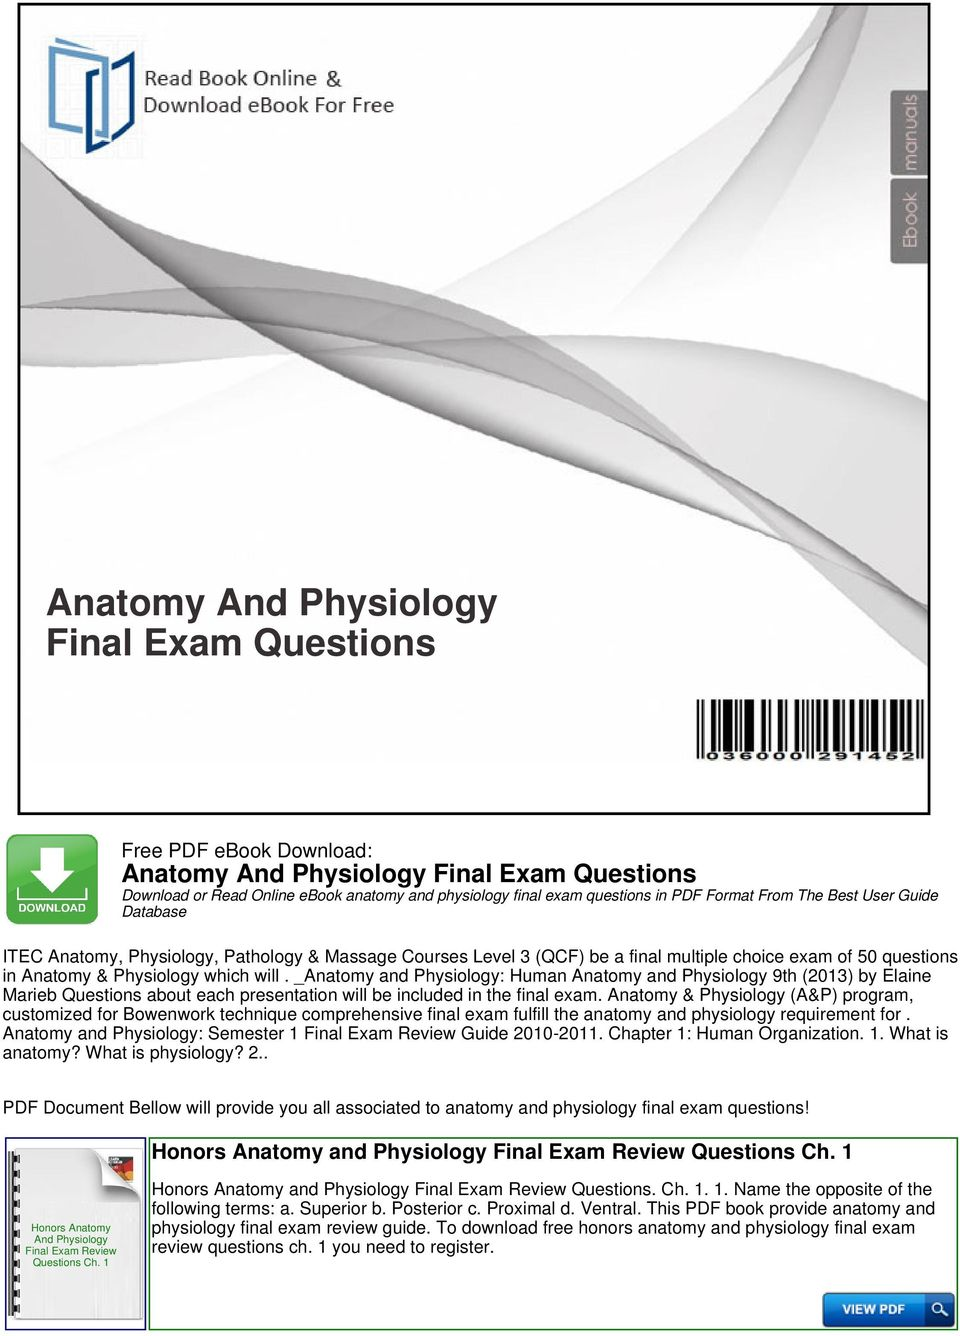 Anatomy And Physiology Final Exam Questions - PDF